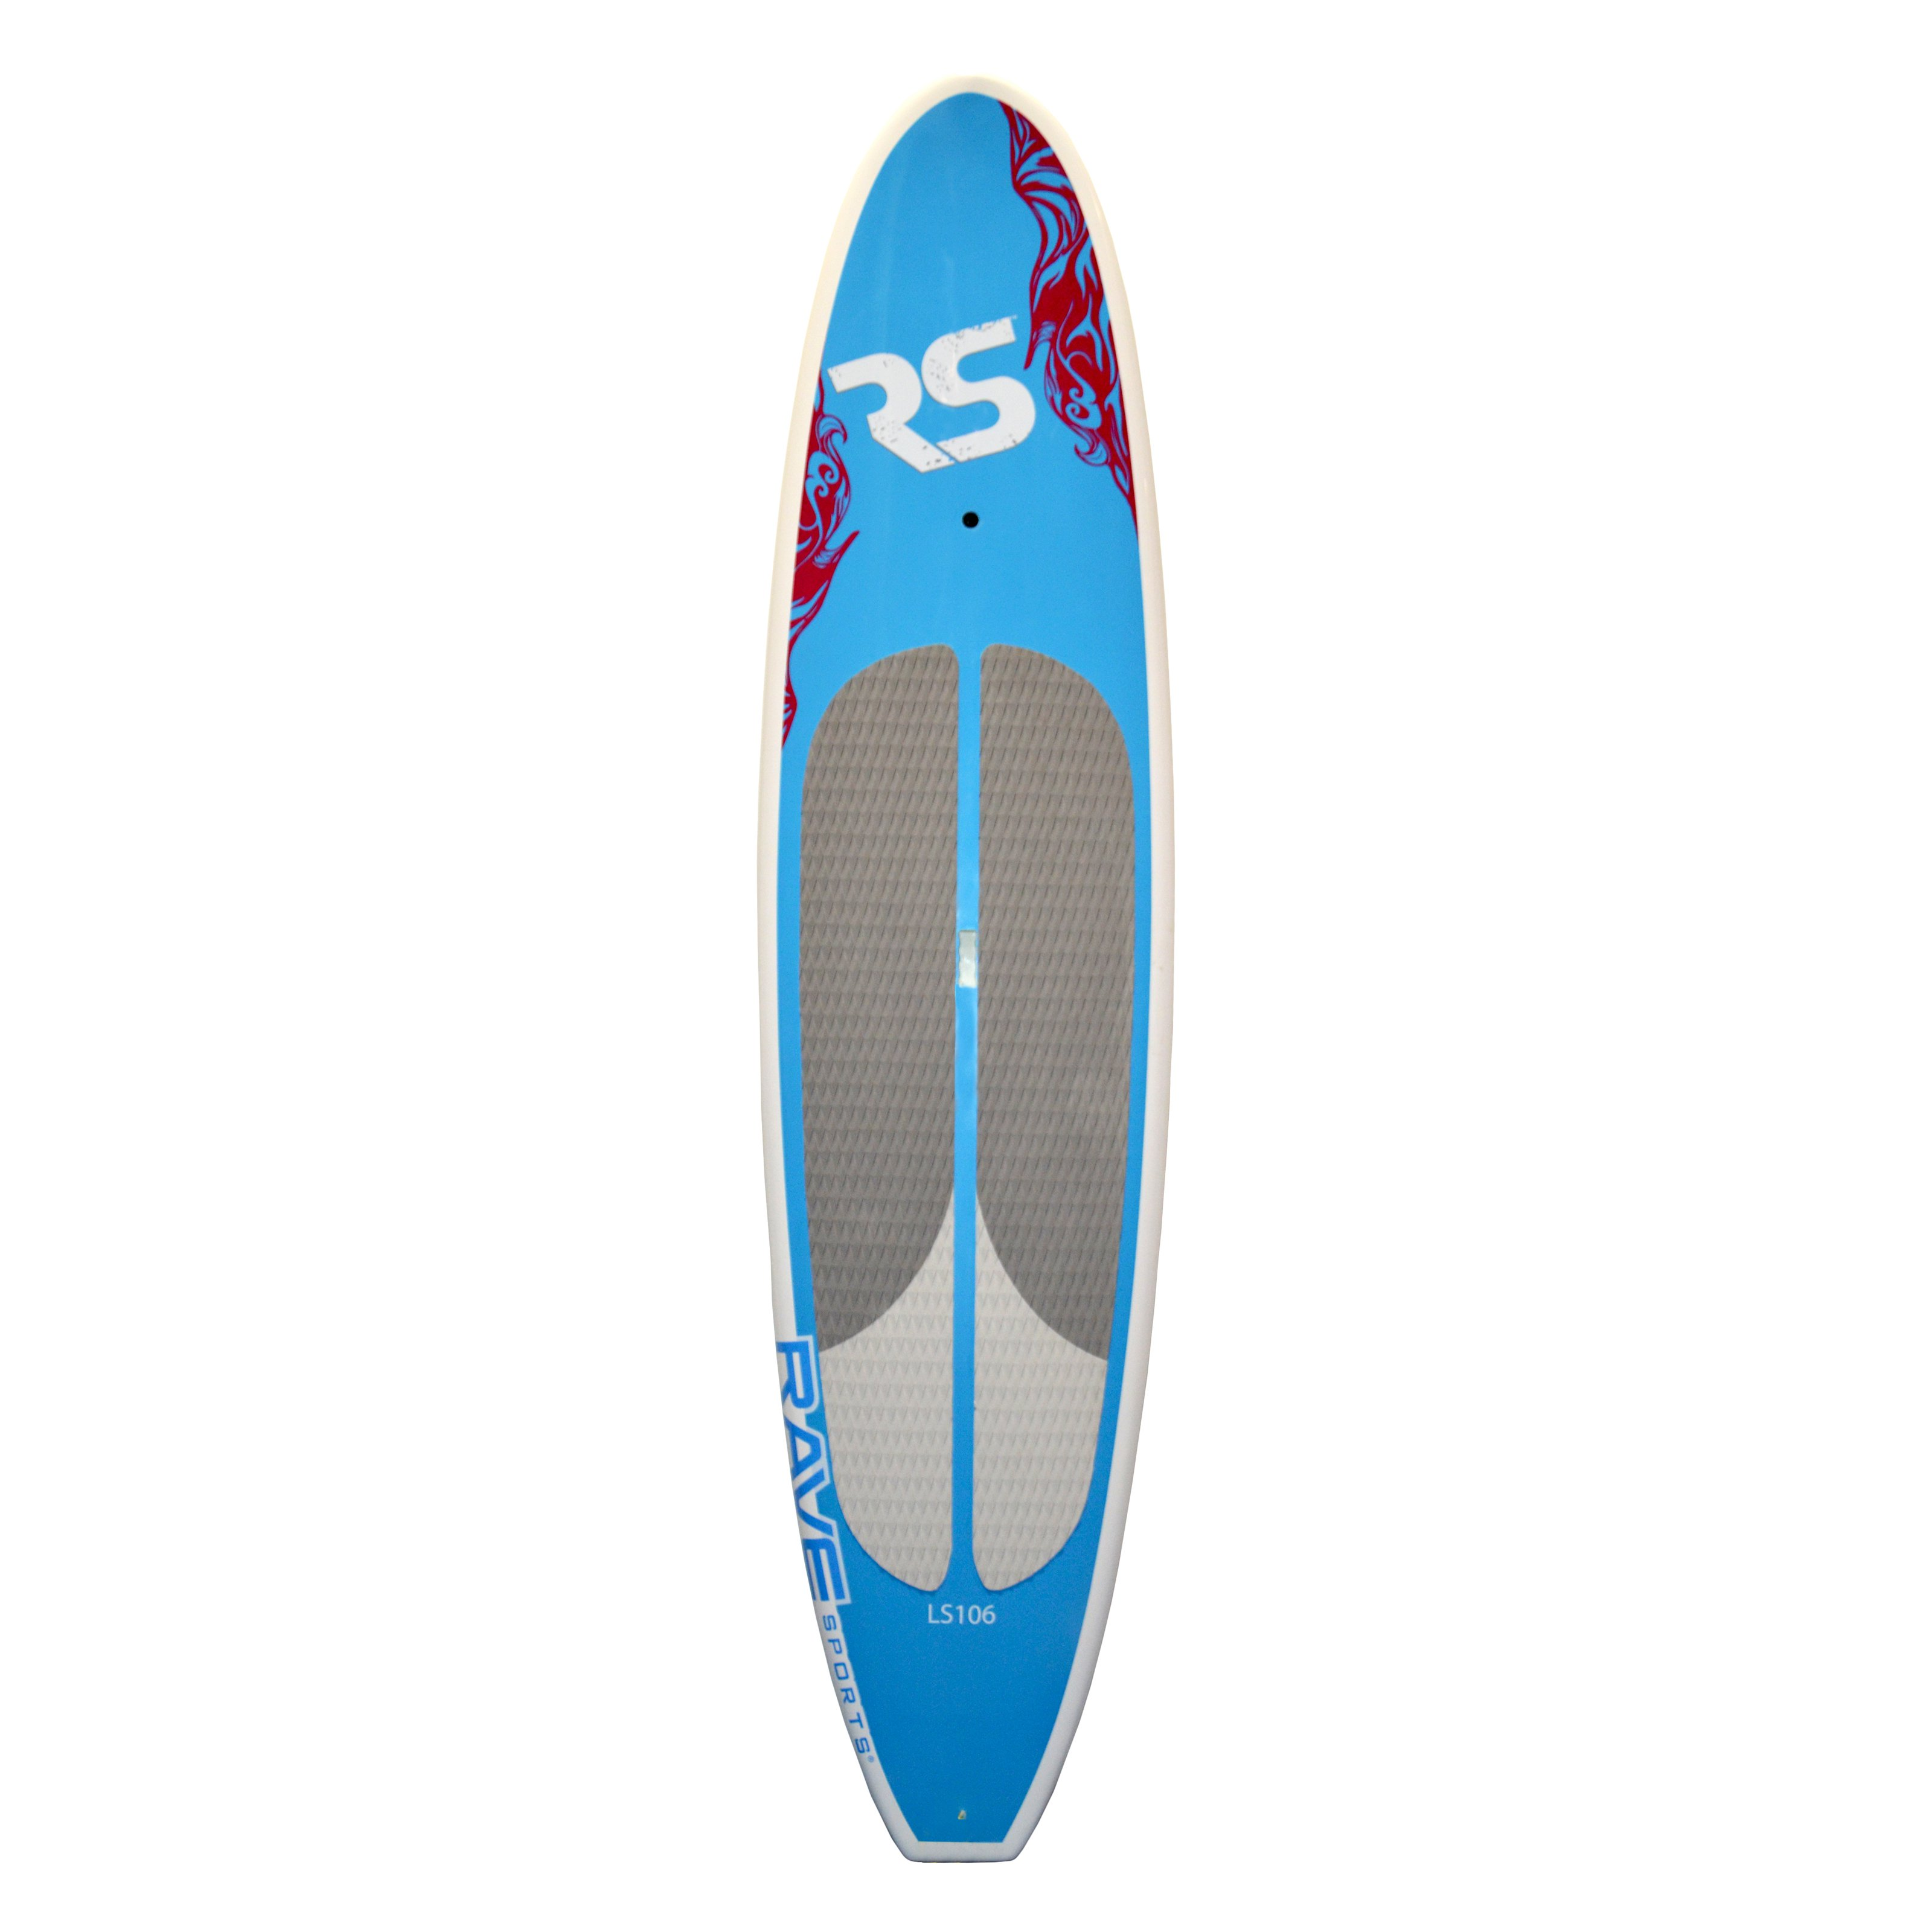 Rave Sports Lake Cruiser SUP LS106 Stand Up Paddle Board